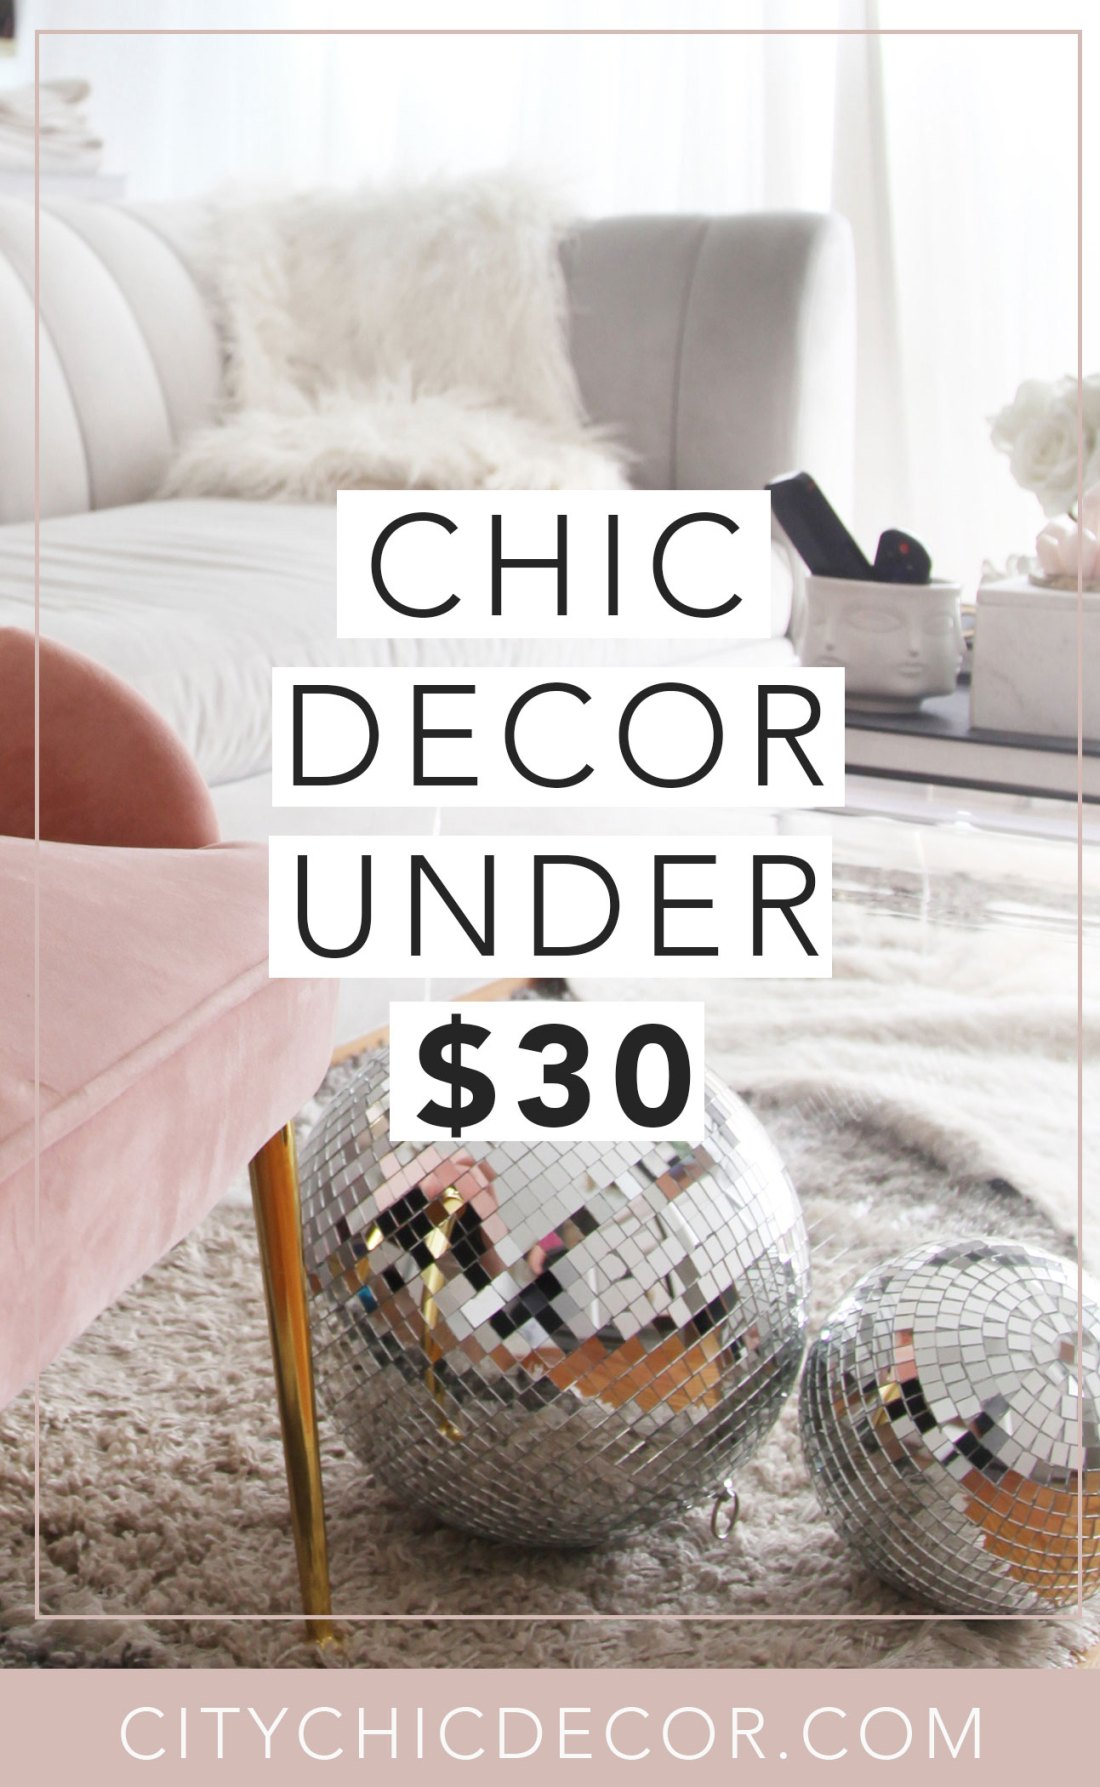 Just moved into a small apartment and are struggling to decorate it on a budget? These glam, affordable decor items from Amazon will blow you & your house guests away. You'll be shocked with how budget-friendly this furniture and decor is! #furnituredesign #furnitureideas #affordablefurniture #affordablefurnitureideas #amazon #thingstobuyonamazon #smallapartmentdecorating #smallapartmentideas